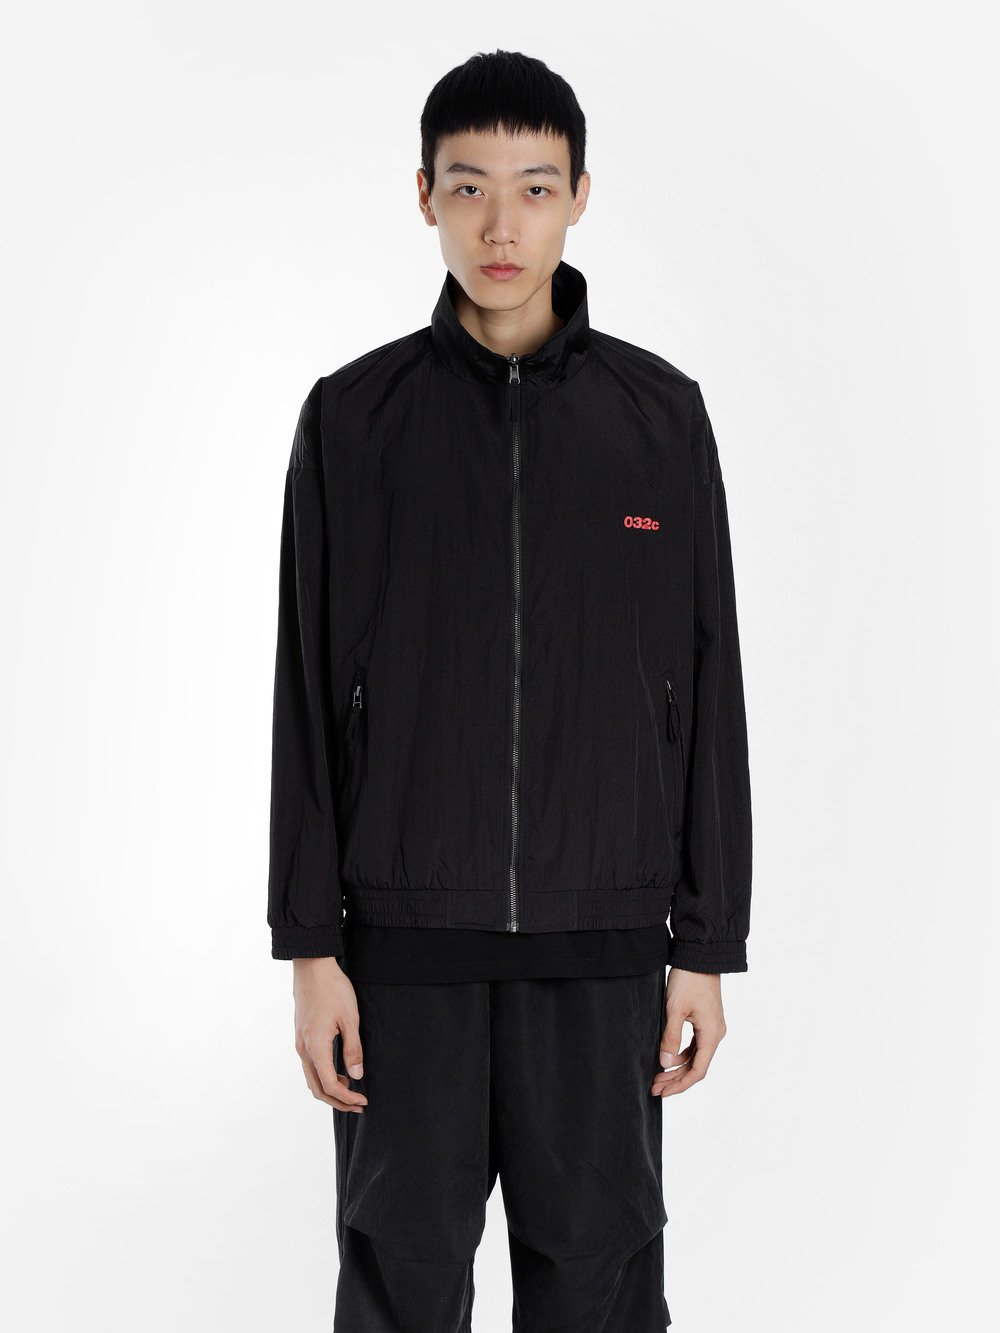 Image of 032C Jackets